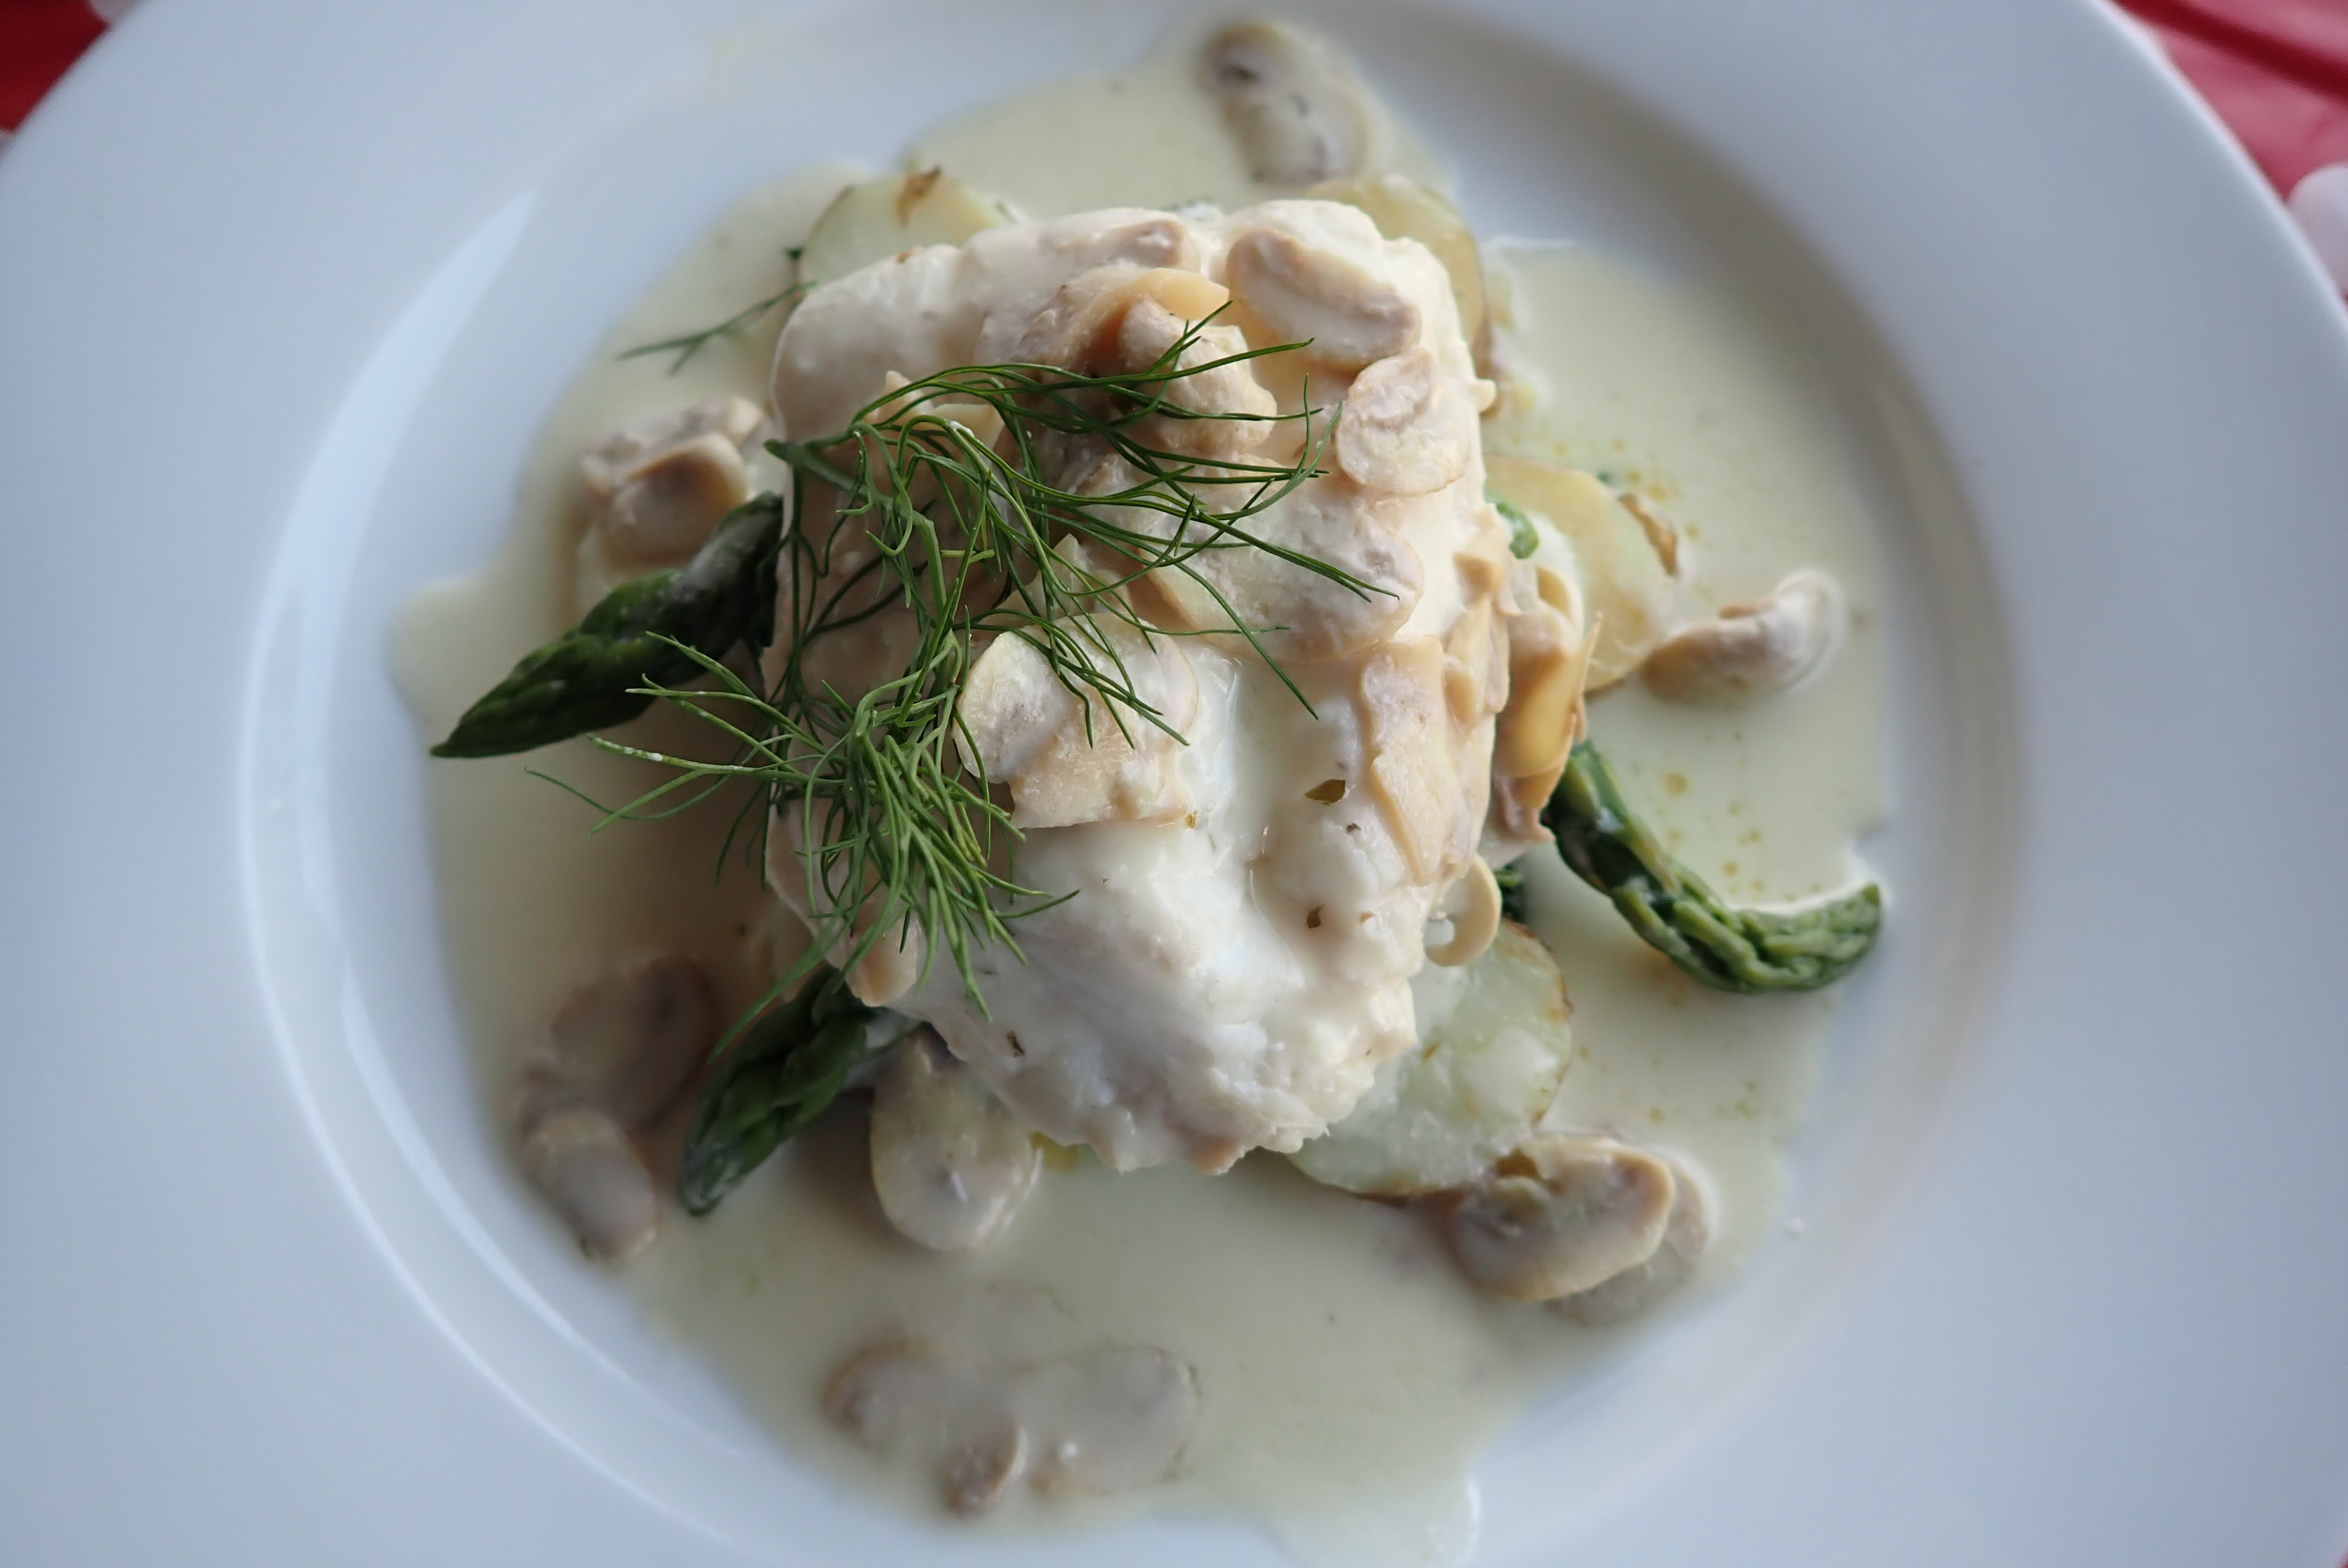 Megrim Sole in White Wine Sauce by Matt Slater